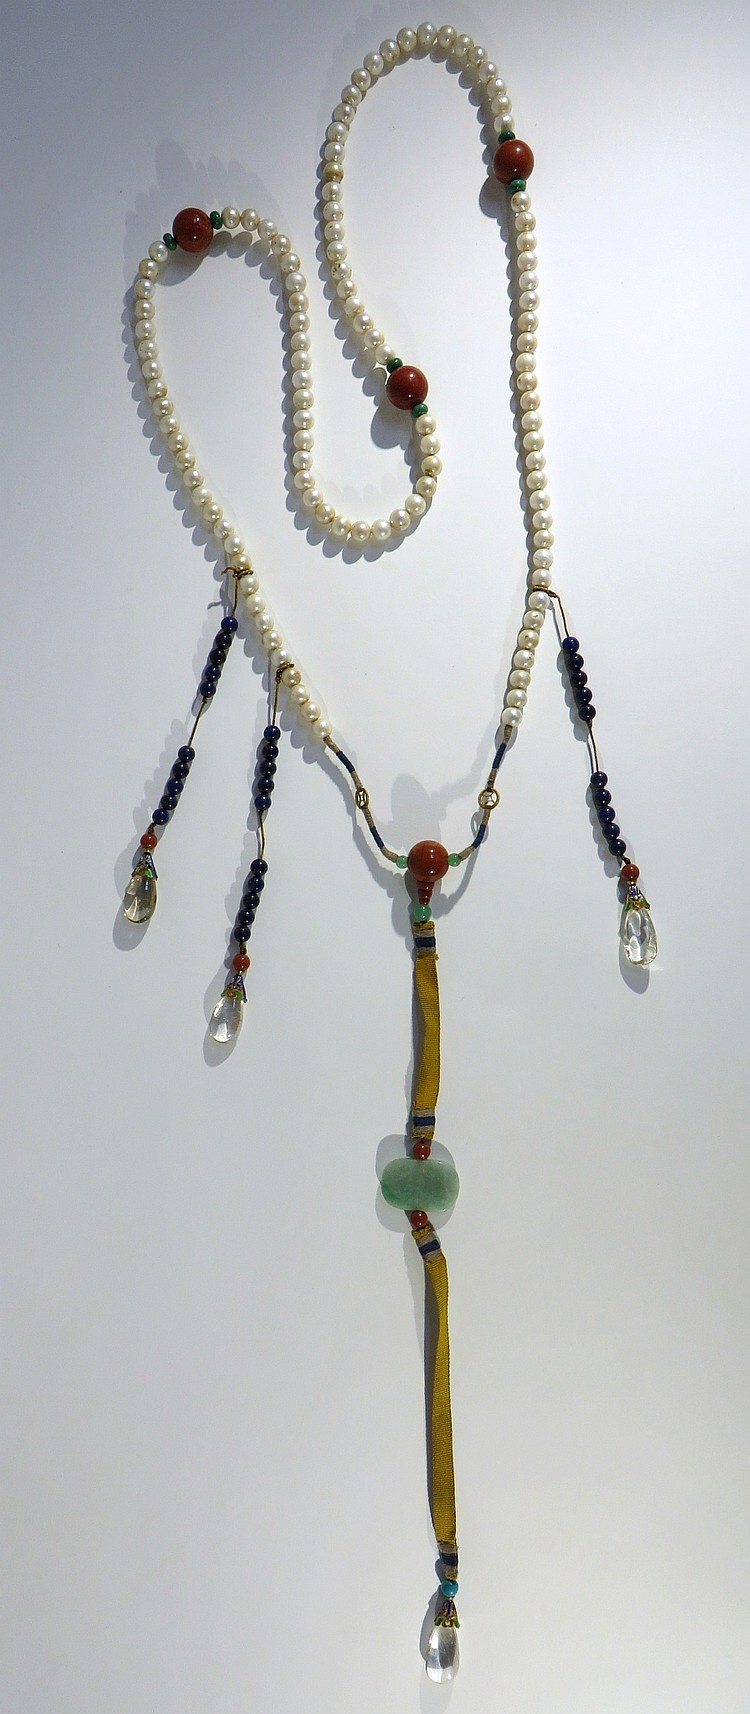 CHINESE PEARL COURT CHAO ZHU NECKLACE